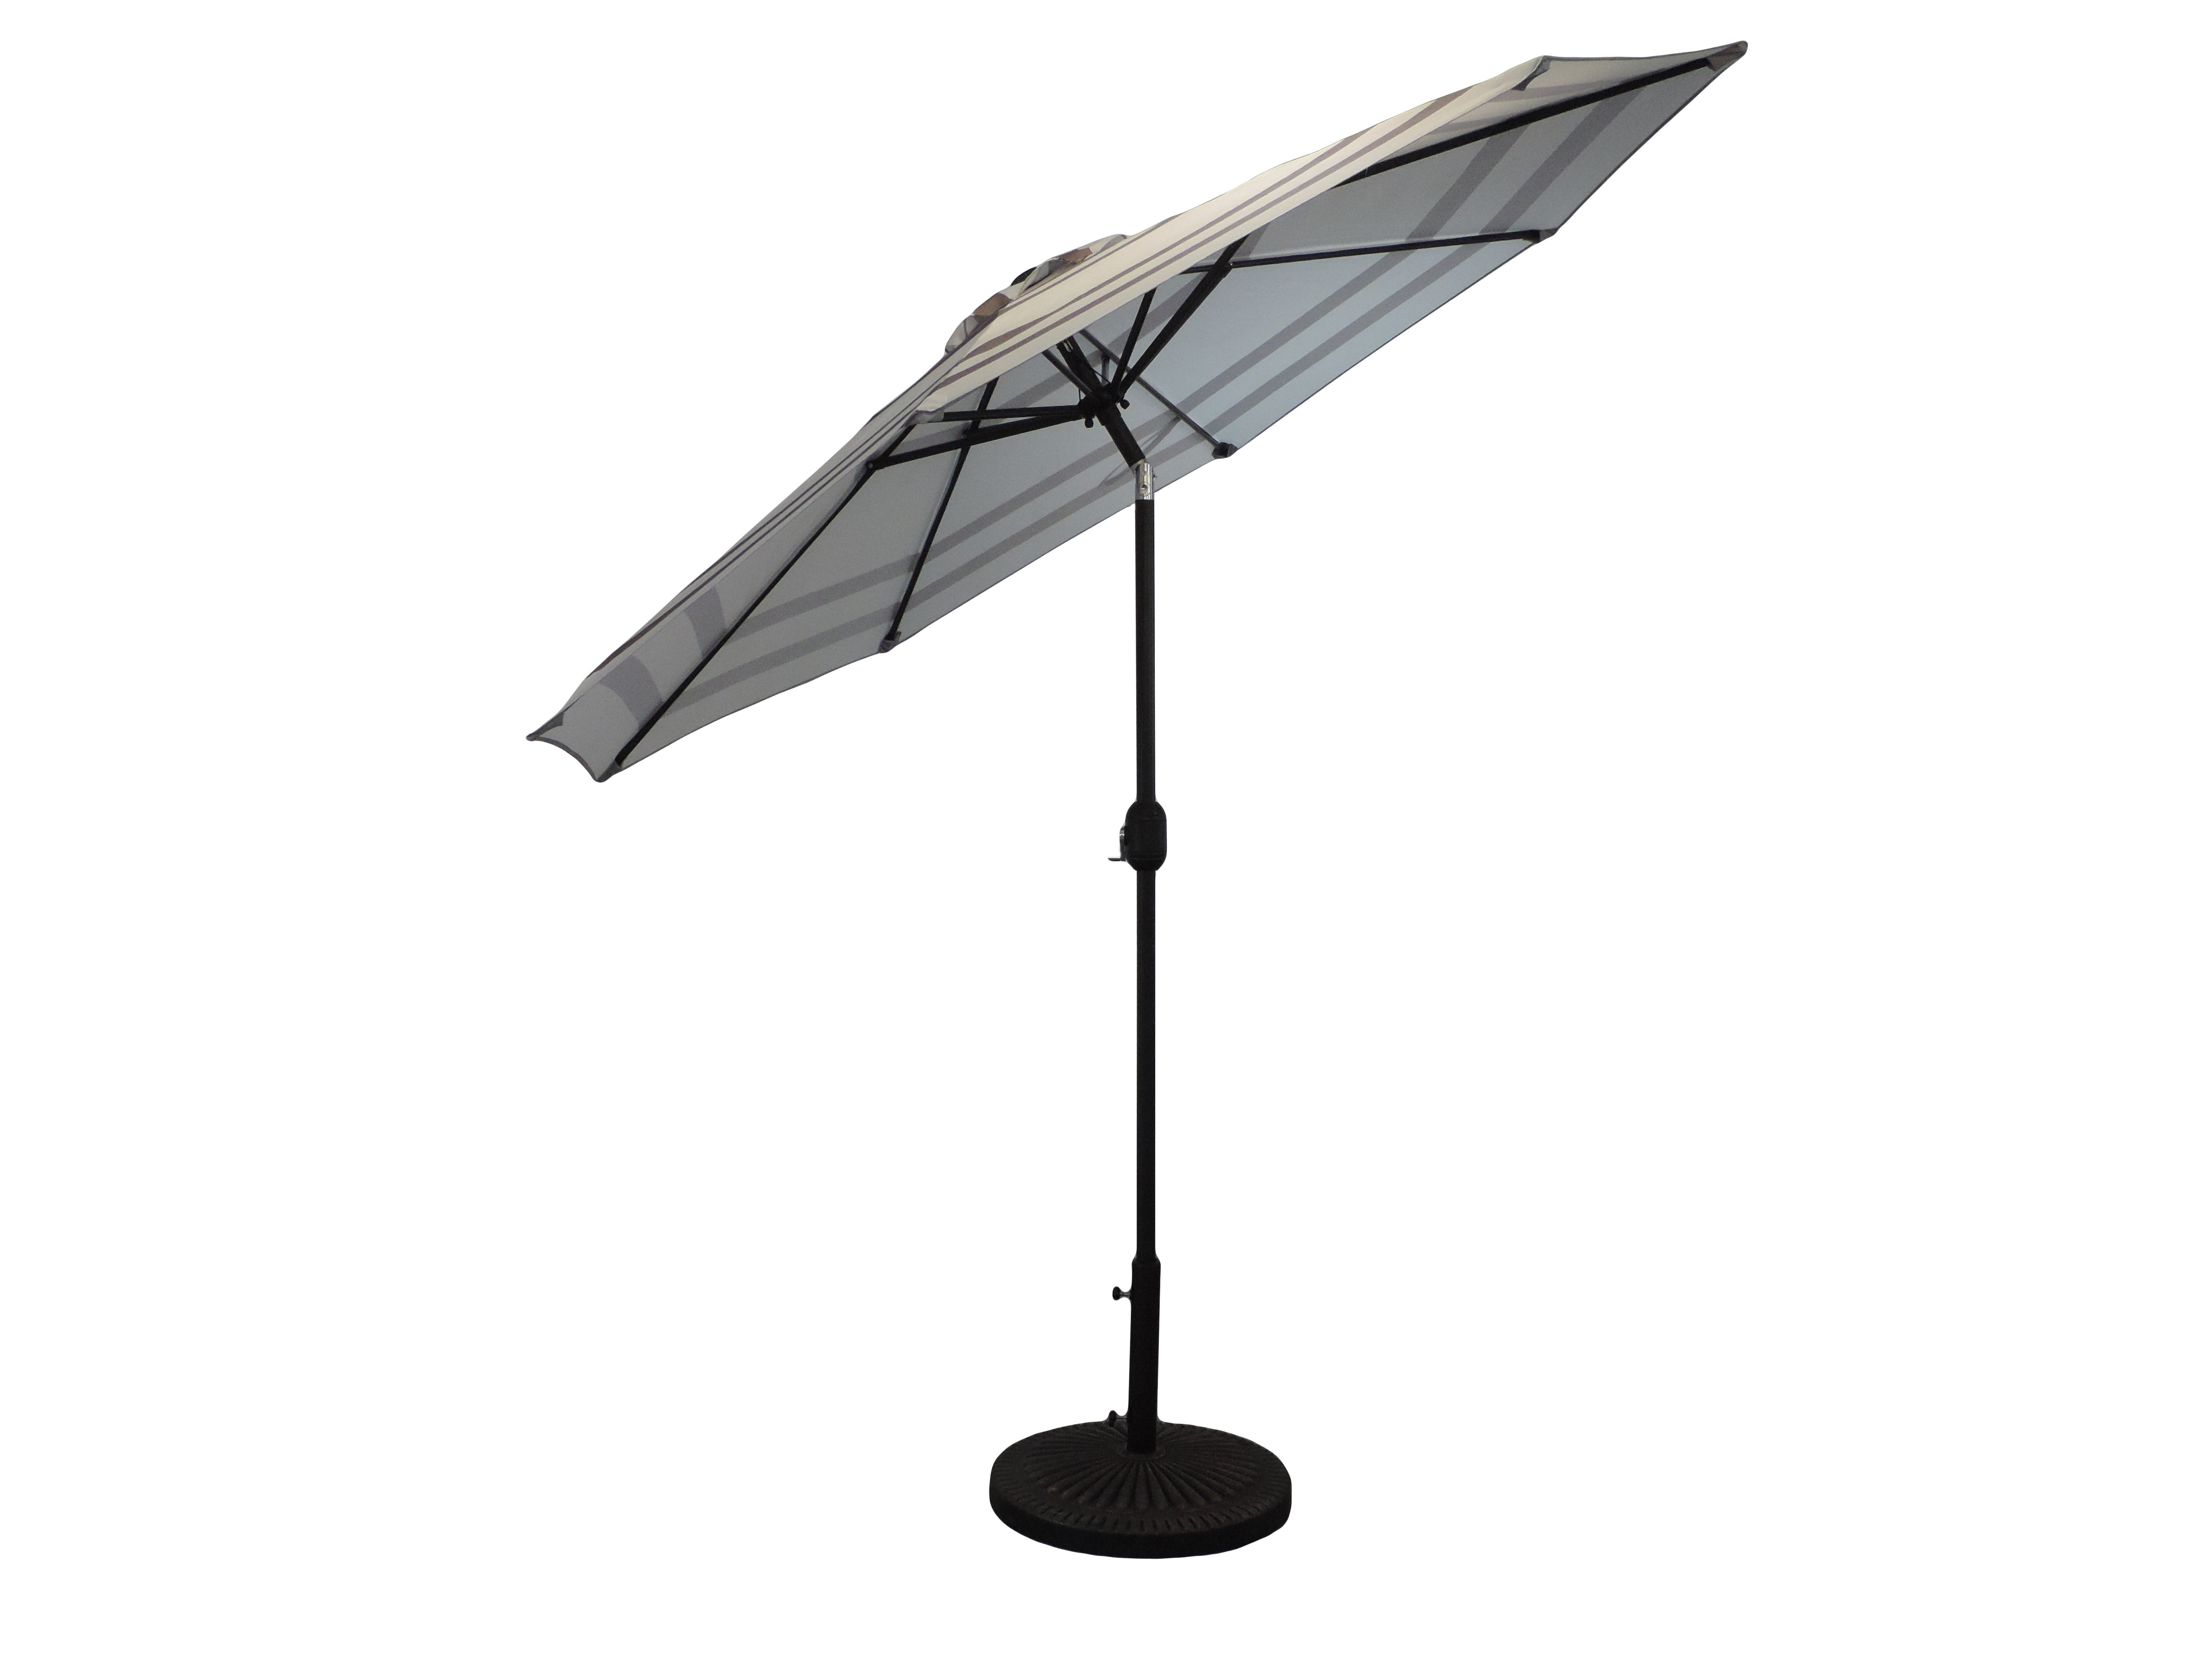 Most Recently Released Manila Striped Patio 9' Market Umbrella Intended For Gainsborough Market Umbrellas (View 13 of 20)